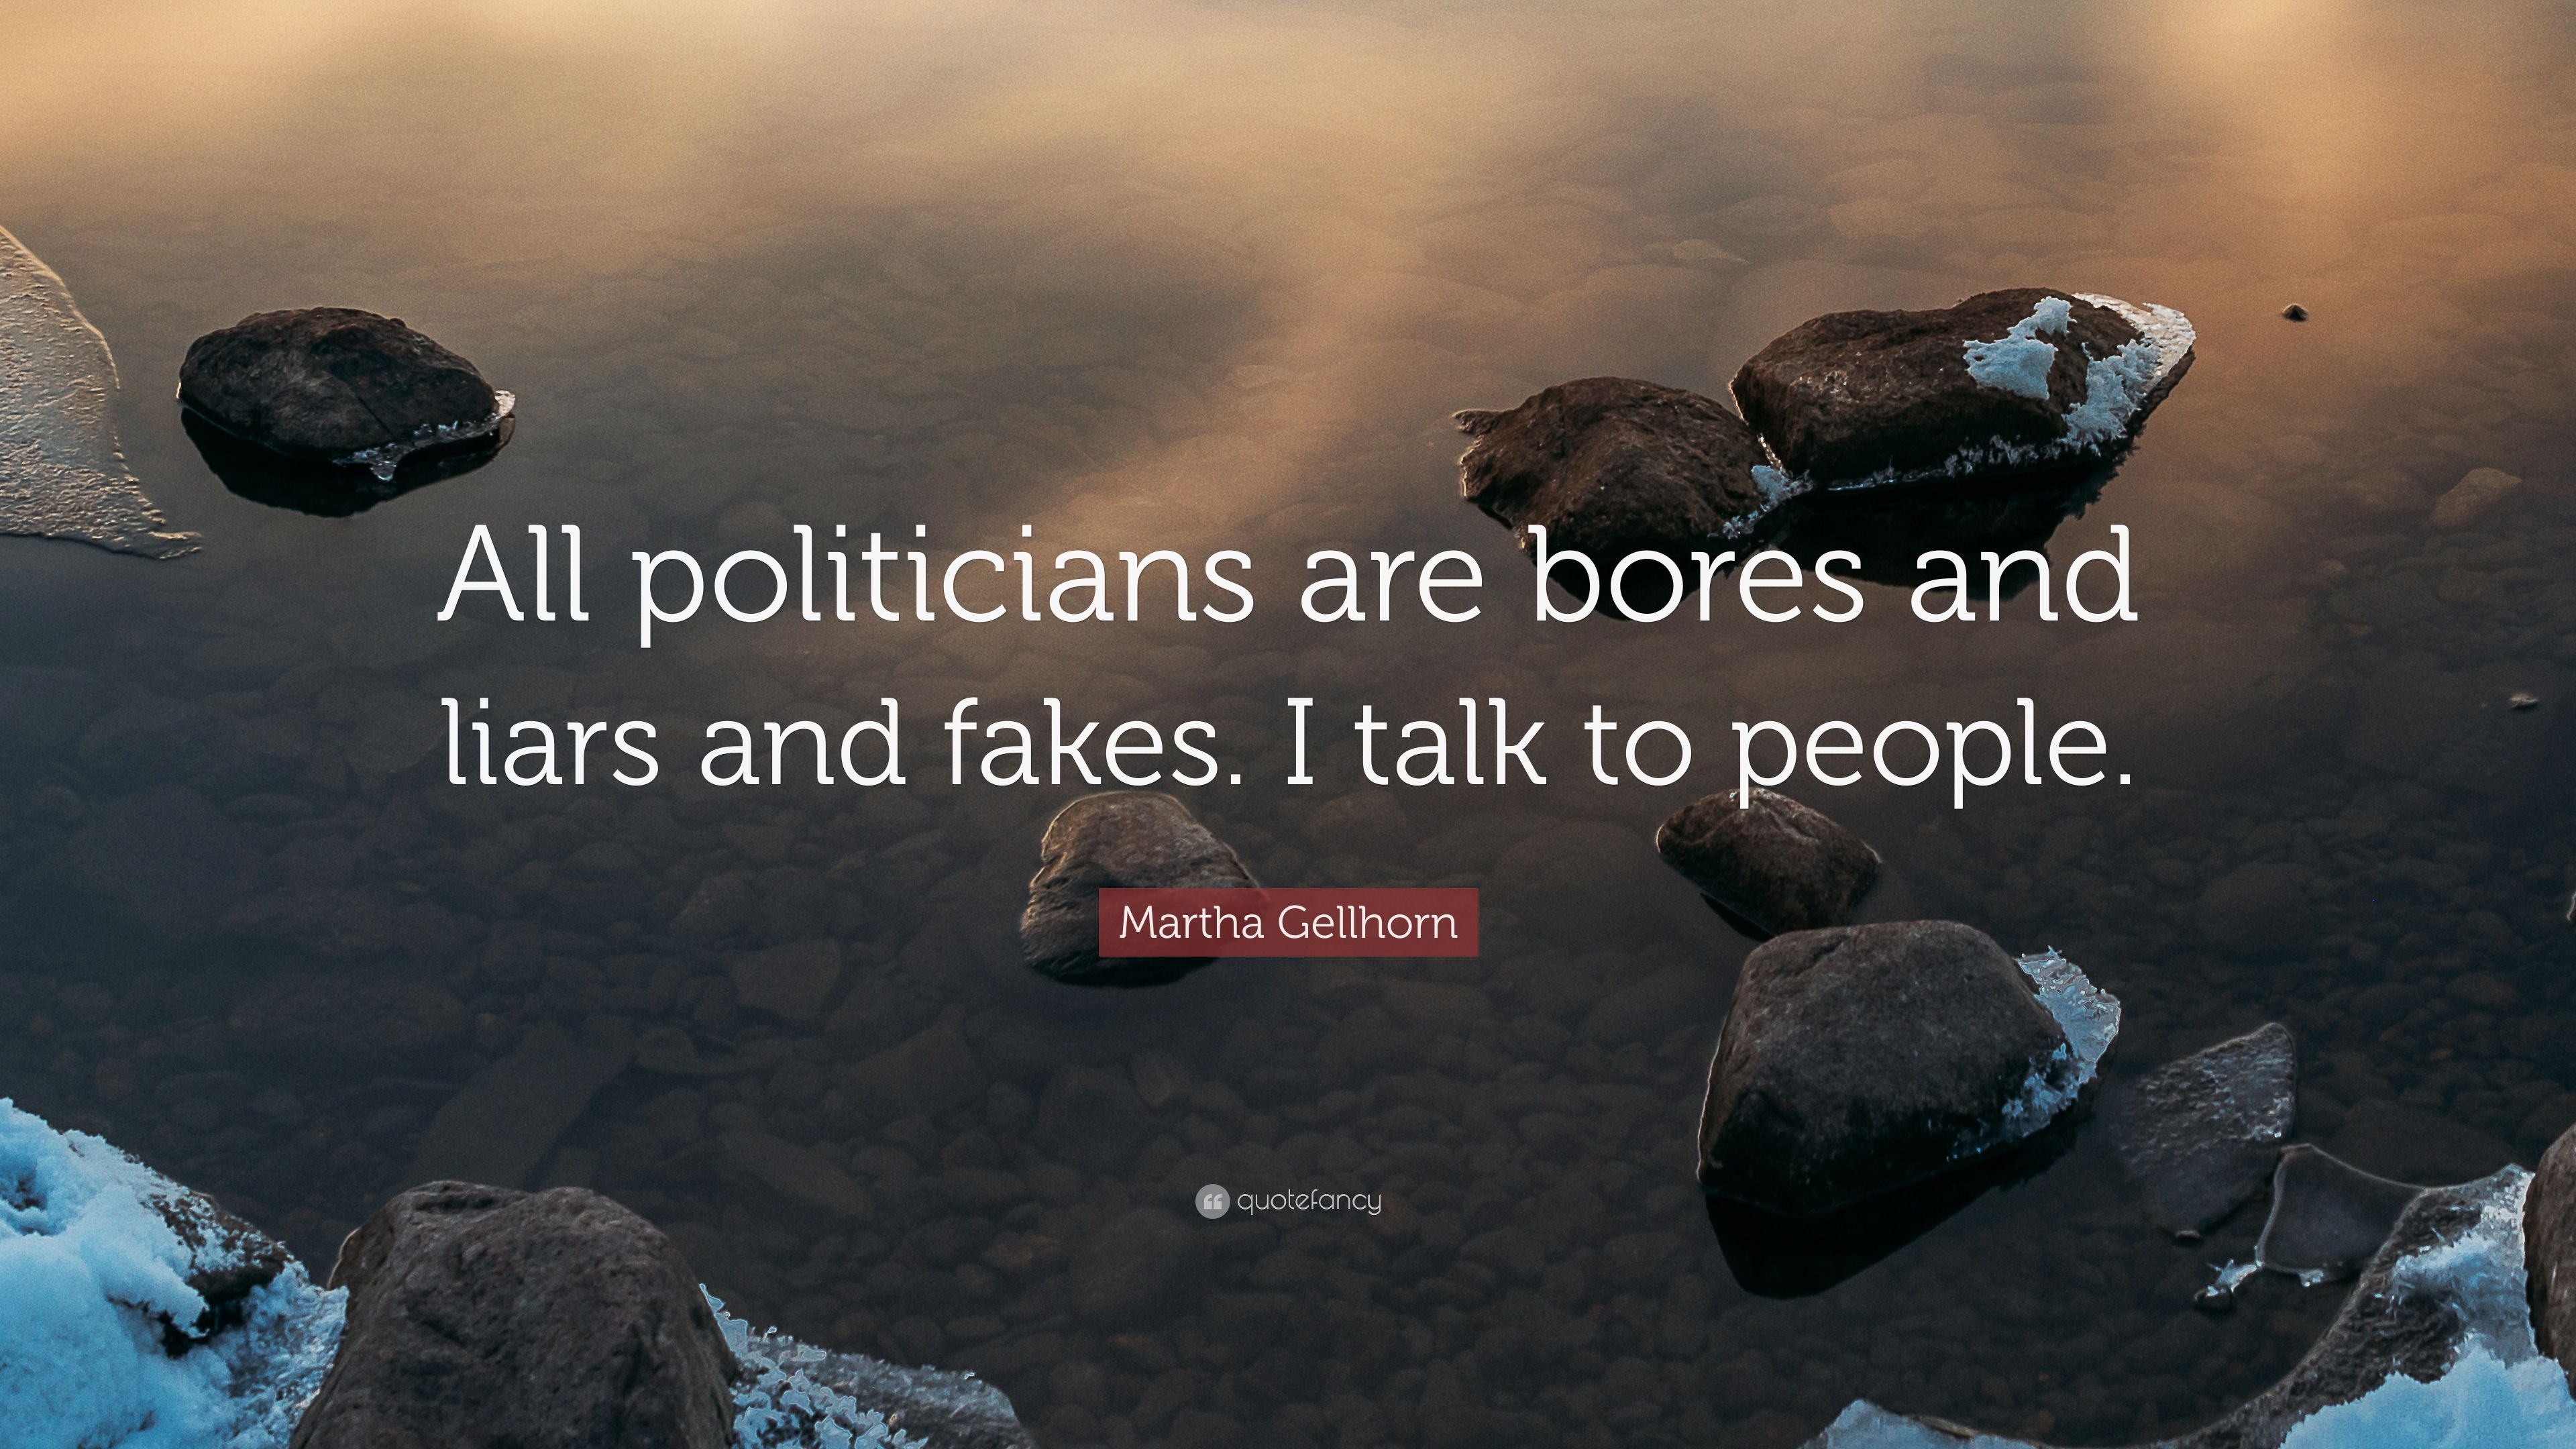 For liars and fakes quotes Best 161